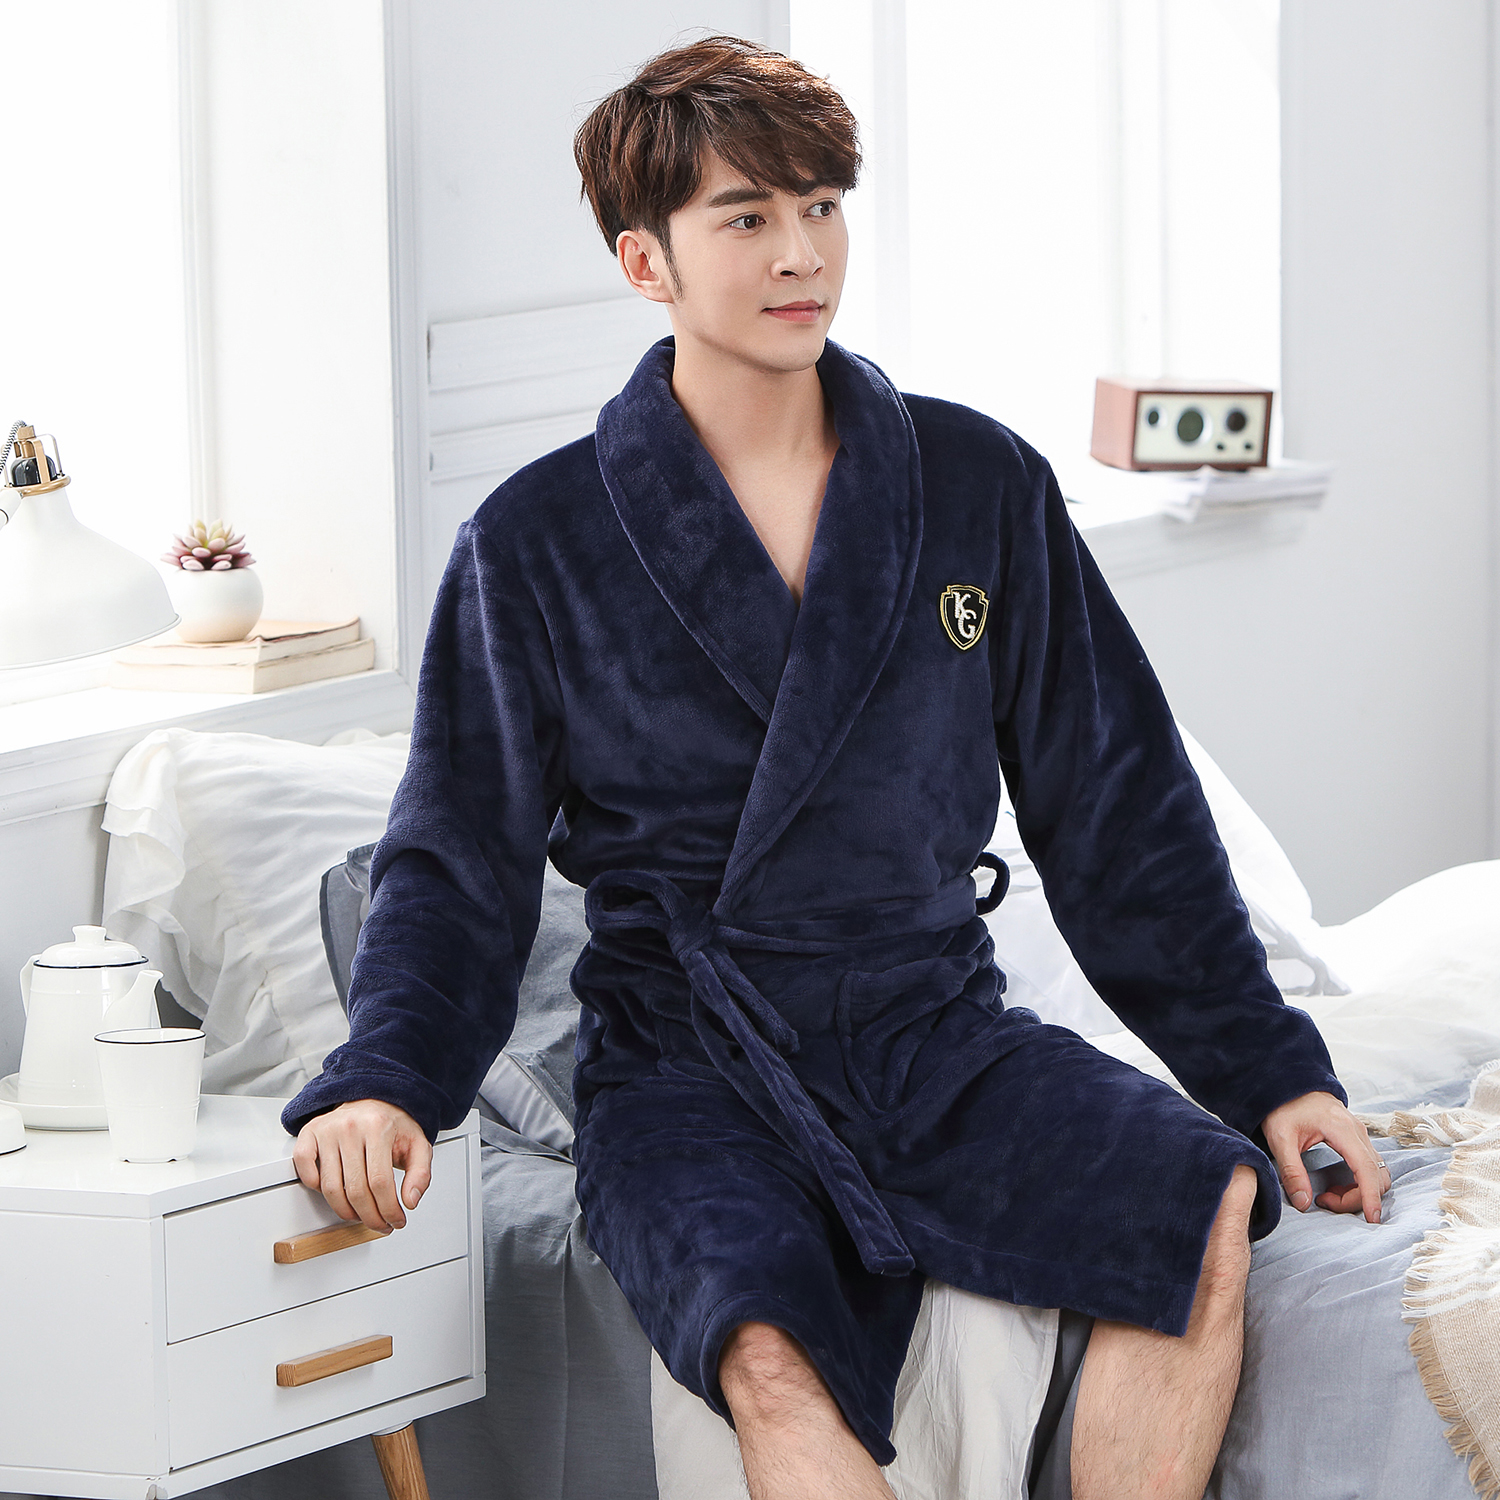 Winter Men Full Kenn-length Kimono Robe Gown Nightwear Keep Warm Nightgown Casual Soft Homewear Bath Gown Flannel Nightdress